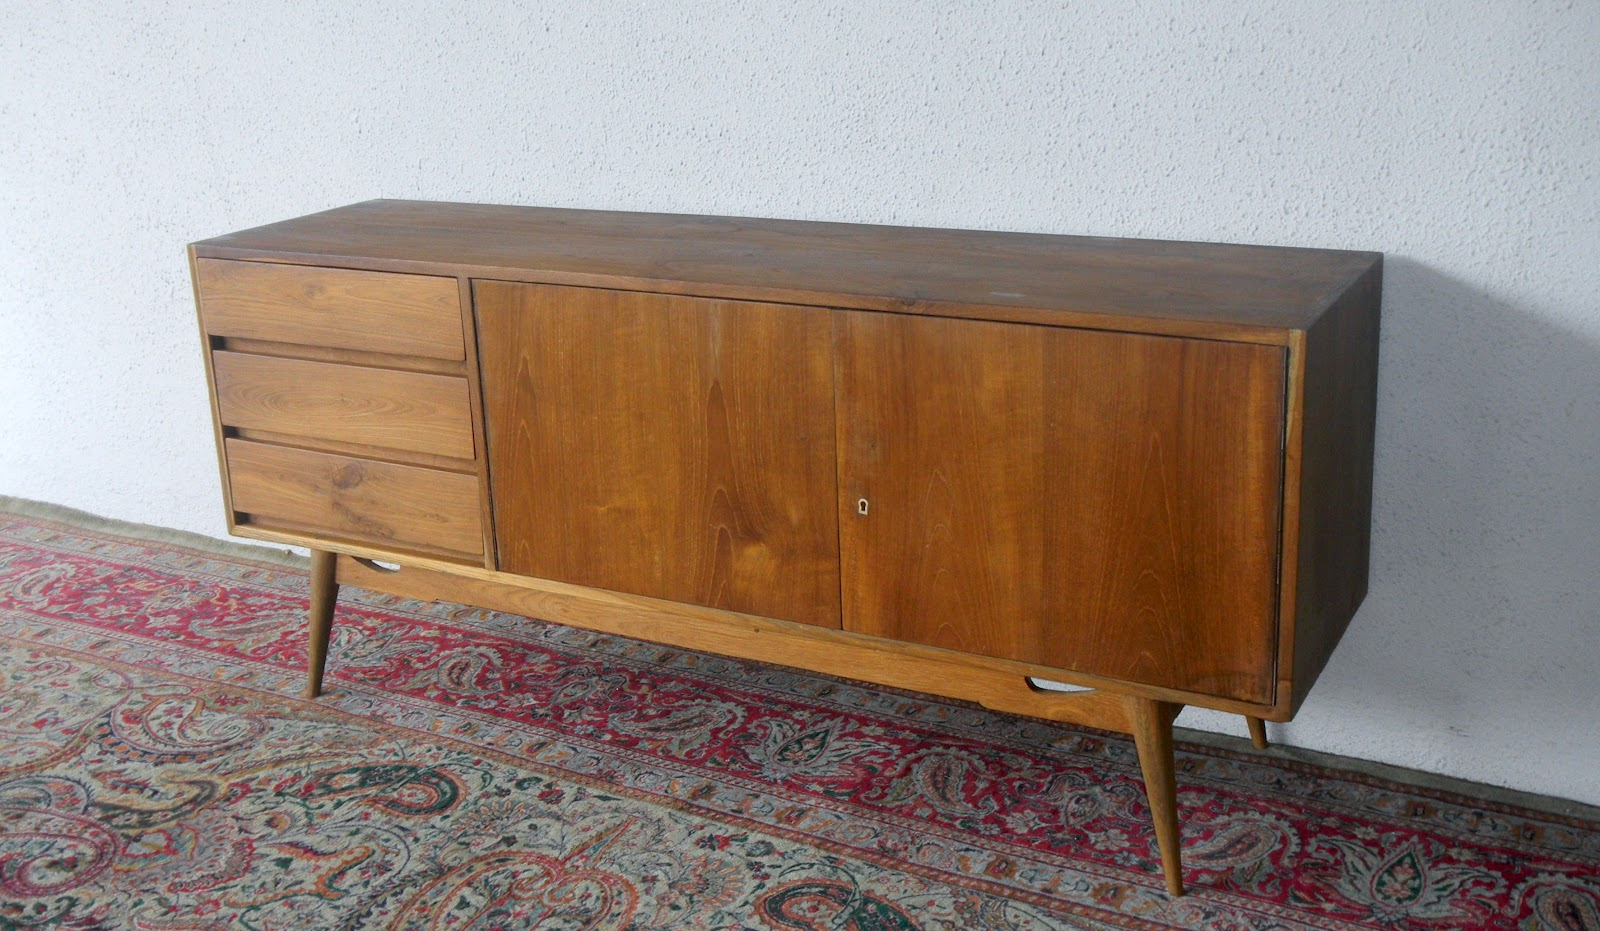 Sideboard Retro Vintage Furniture Beautiful Sideboards Wardrobes And